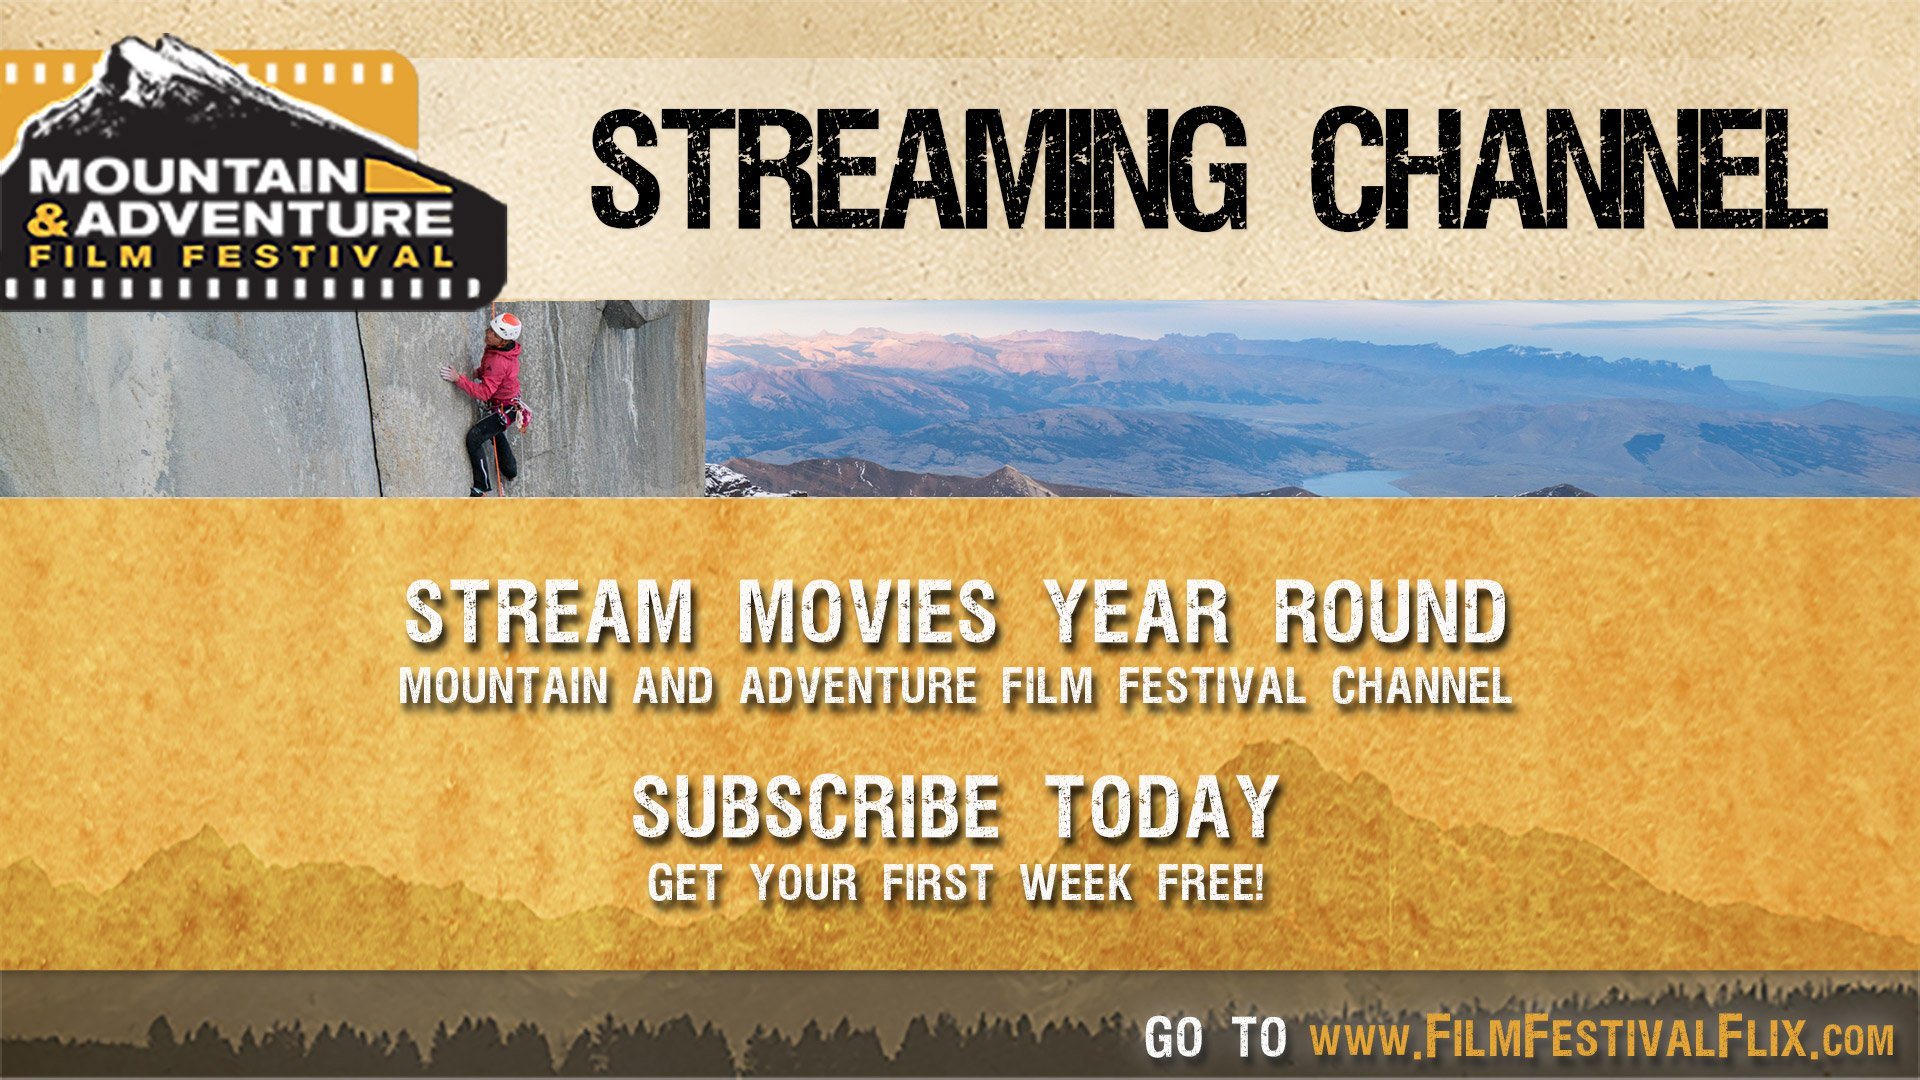 The Mountain & Adventure Film Festival Channel